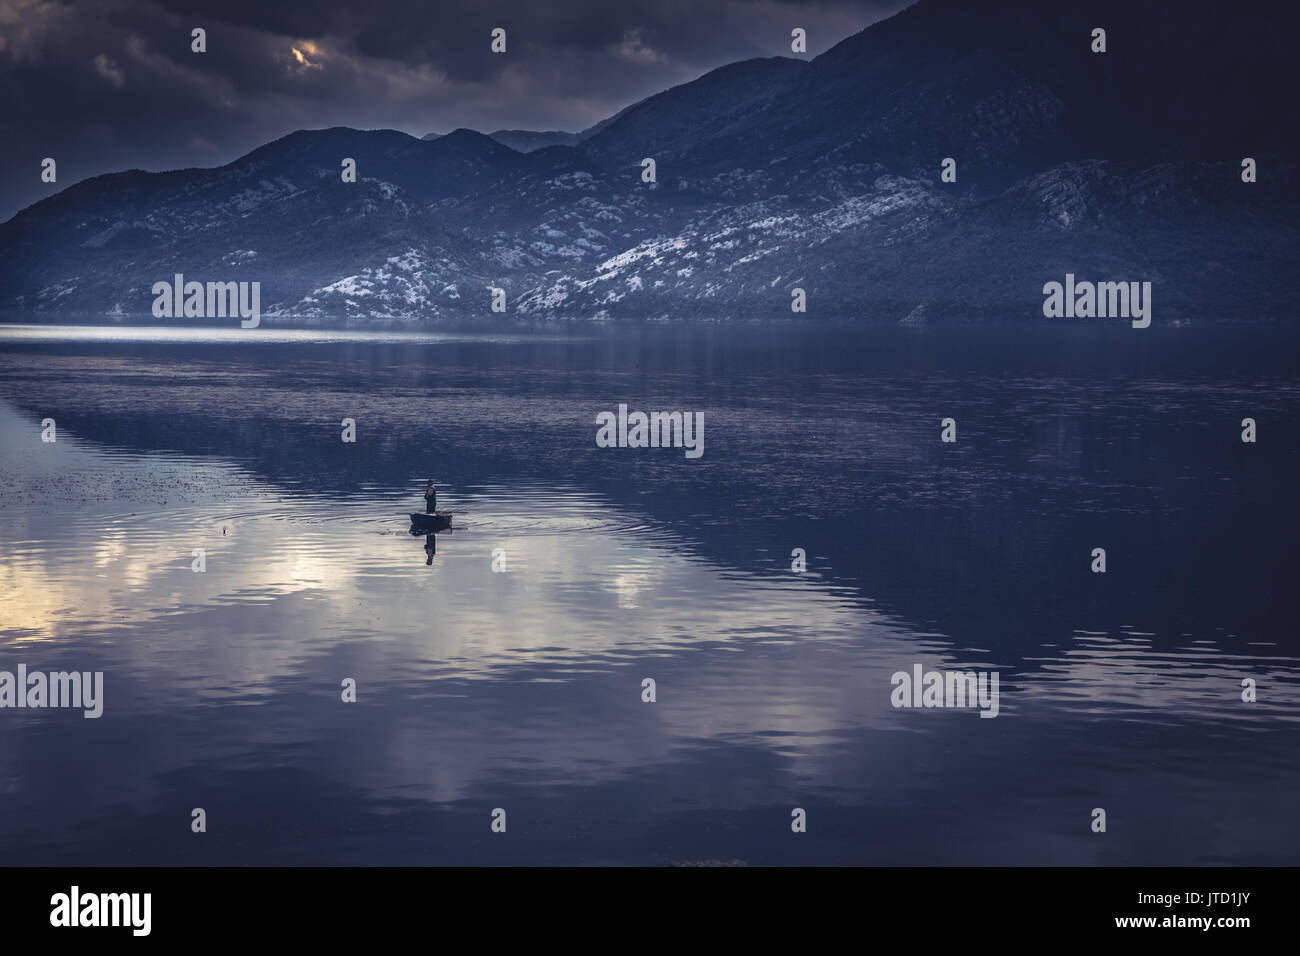 Idyllic mountains landscape with man in fishing boat in the middle of tranquil lake with water reflections during sunrise with dramatic sky in blue to - Stock Image